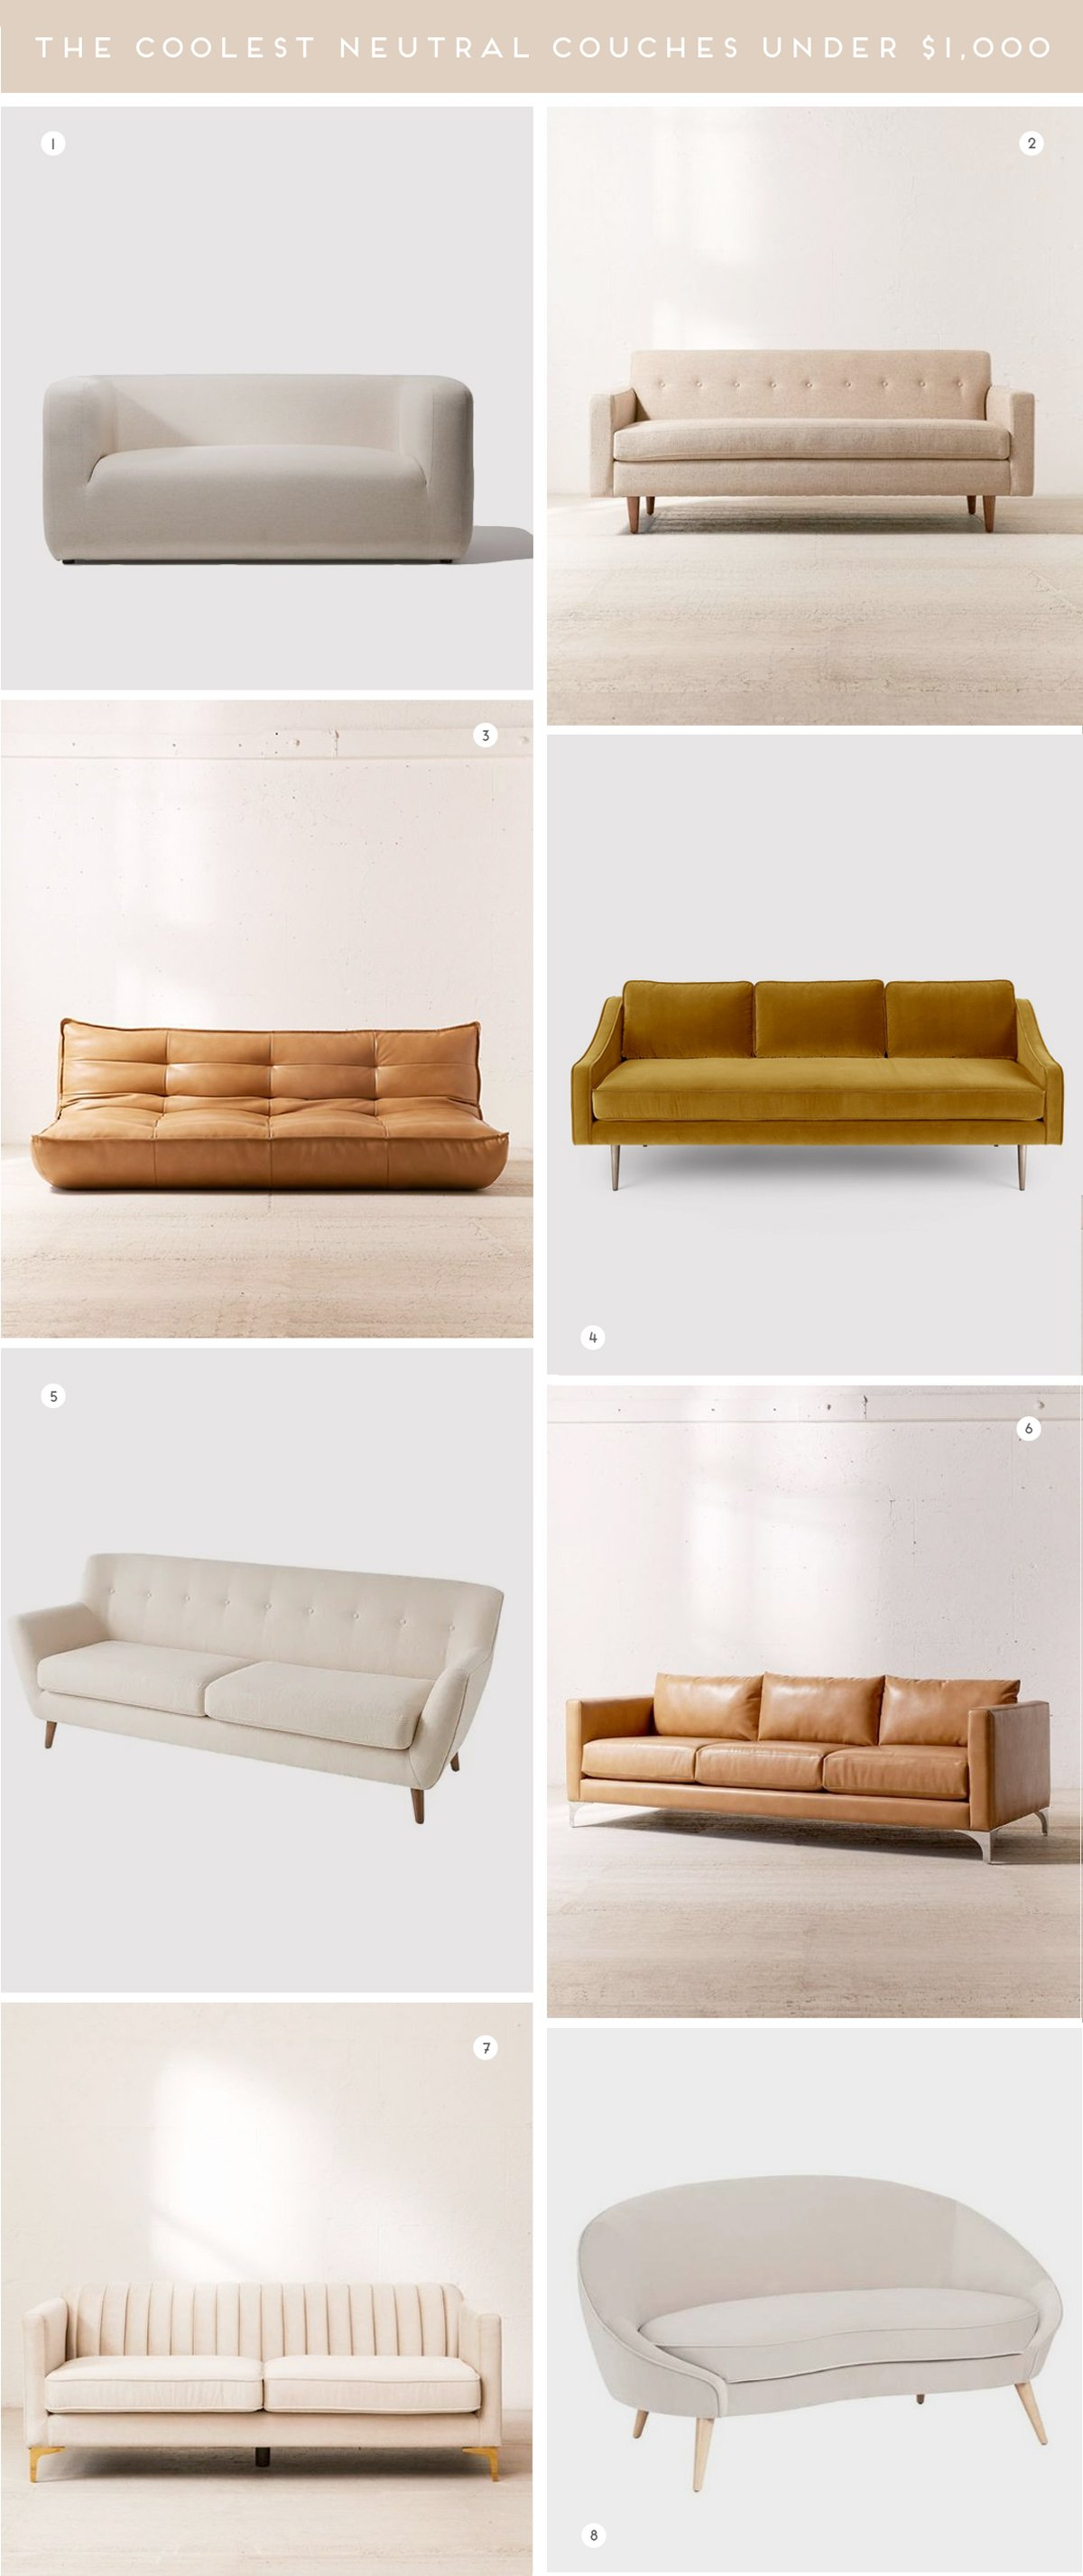 A roundup of the most stylish, modern sofas and coolest couches under $1,000. All neutral colors as well.